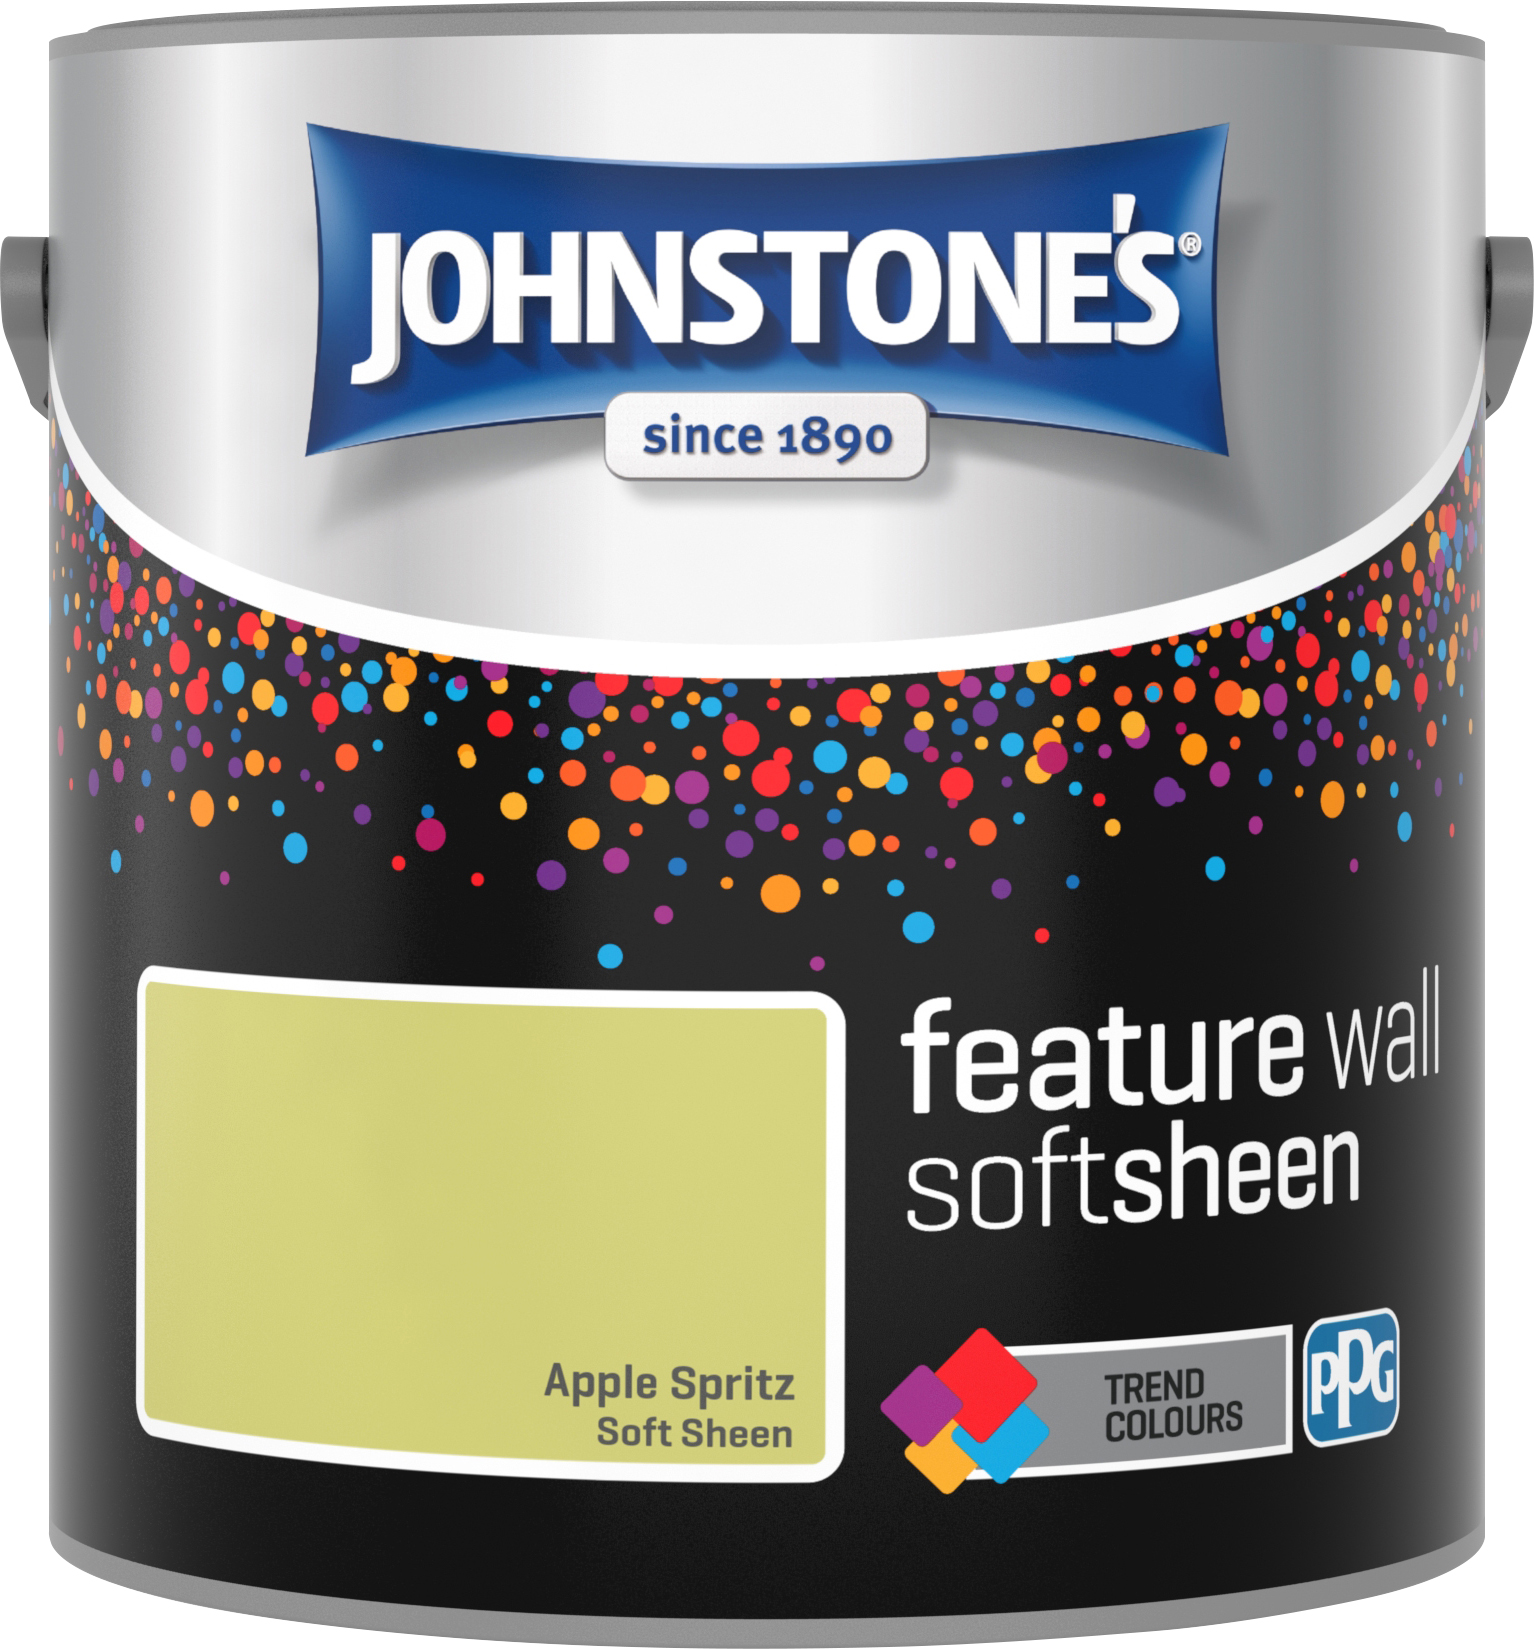 Johnstone's 2.5 Litre Feature Wall Soft Sheen Emulsion Paint - Apple Spritz